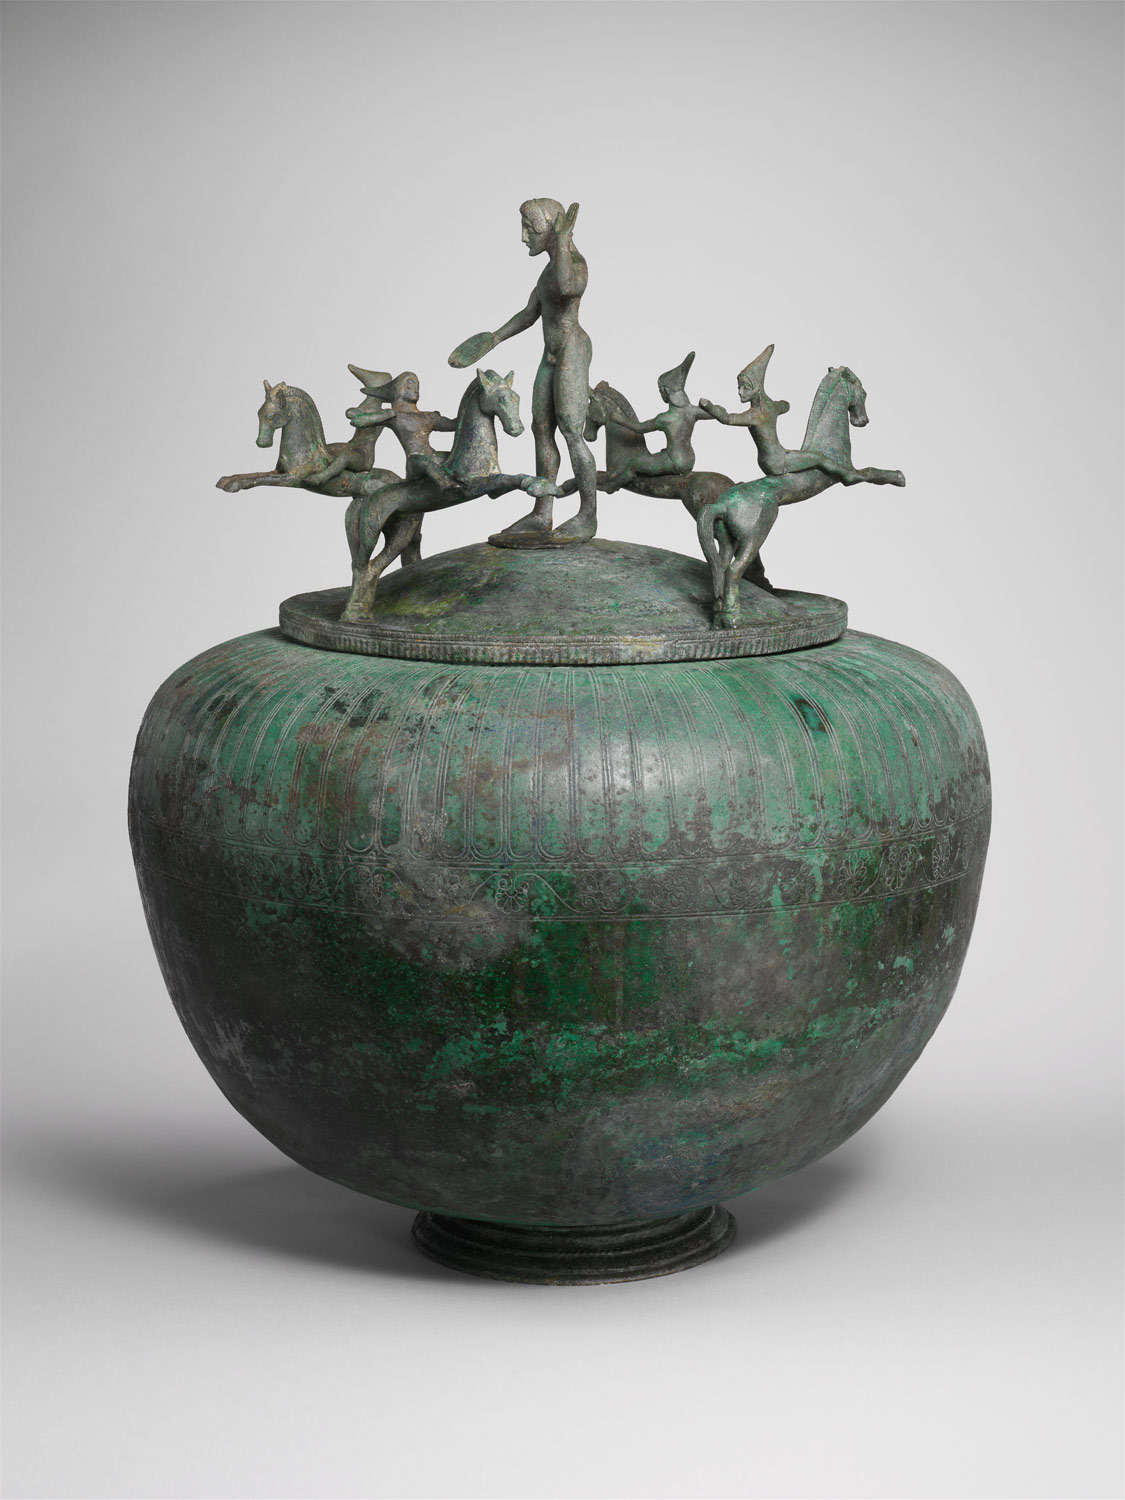 Bronze cinerary urn with lid